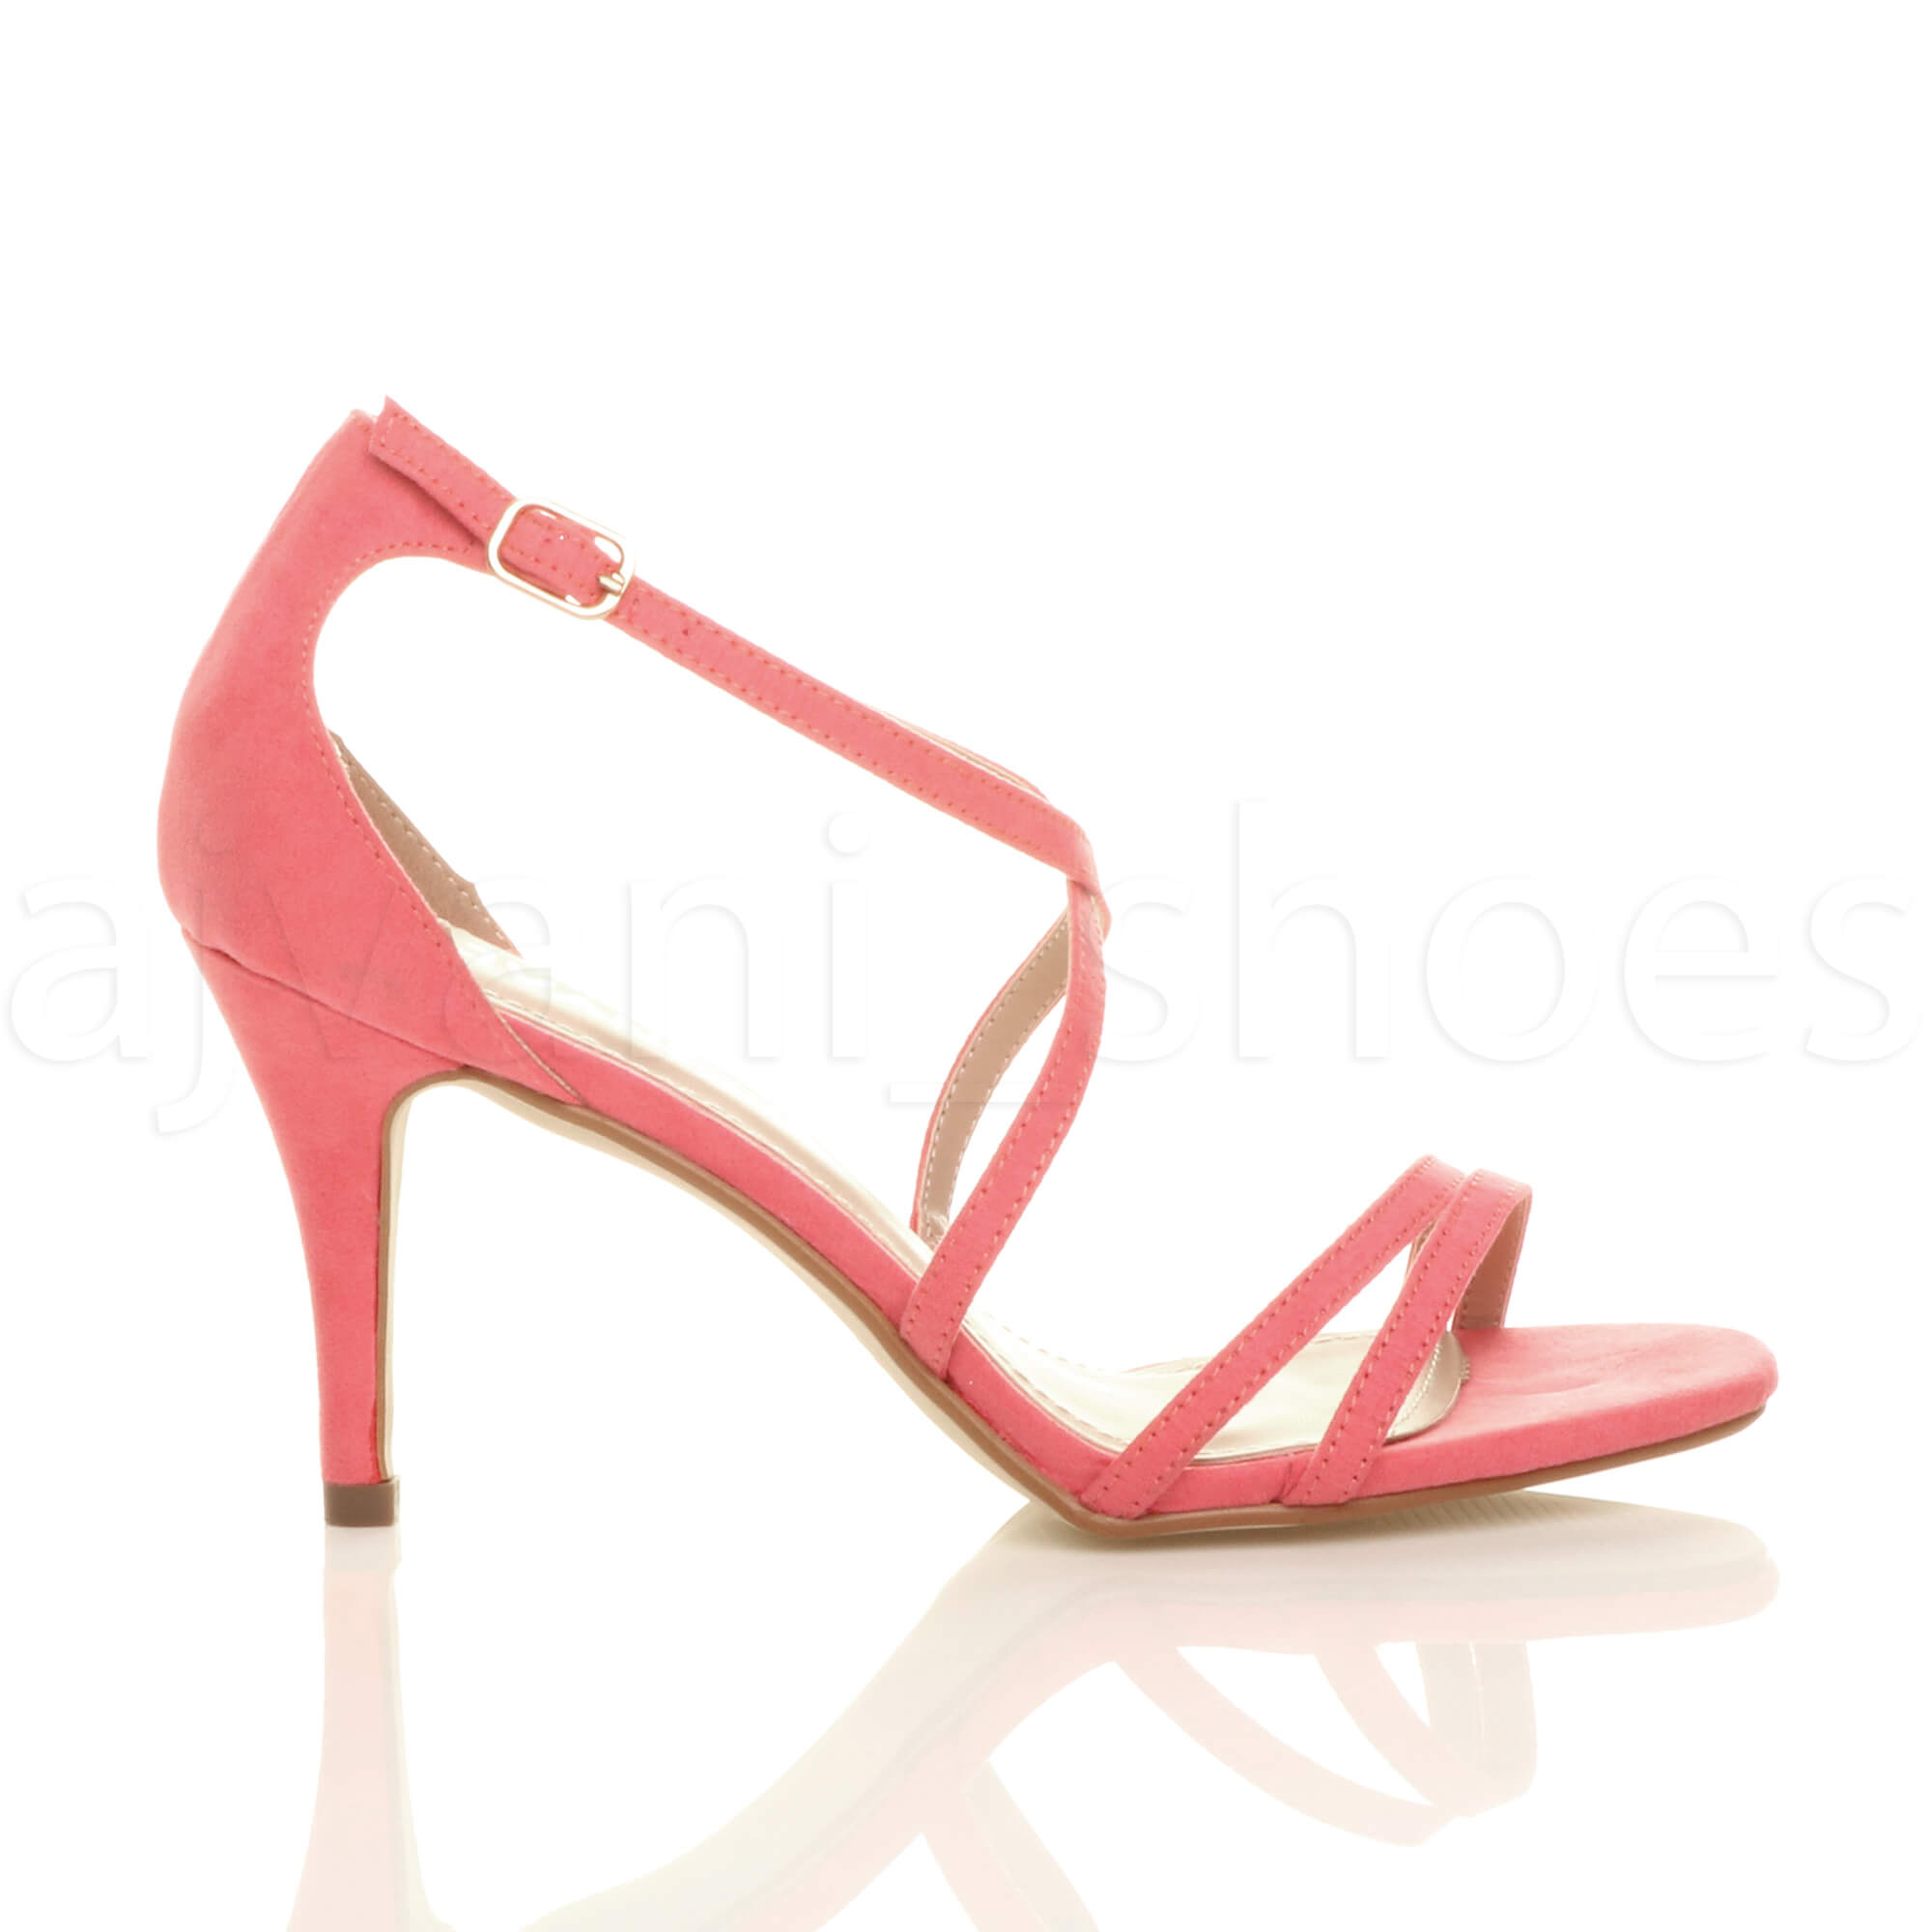 WOMENS-LADIES-MID-HIGH-HEEL-STRAPPY-CROSSOVER-WEDDING-PROM-SANDALS-SHOES-SIZE thumbnail 38